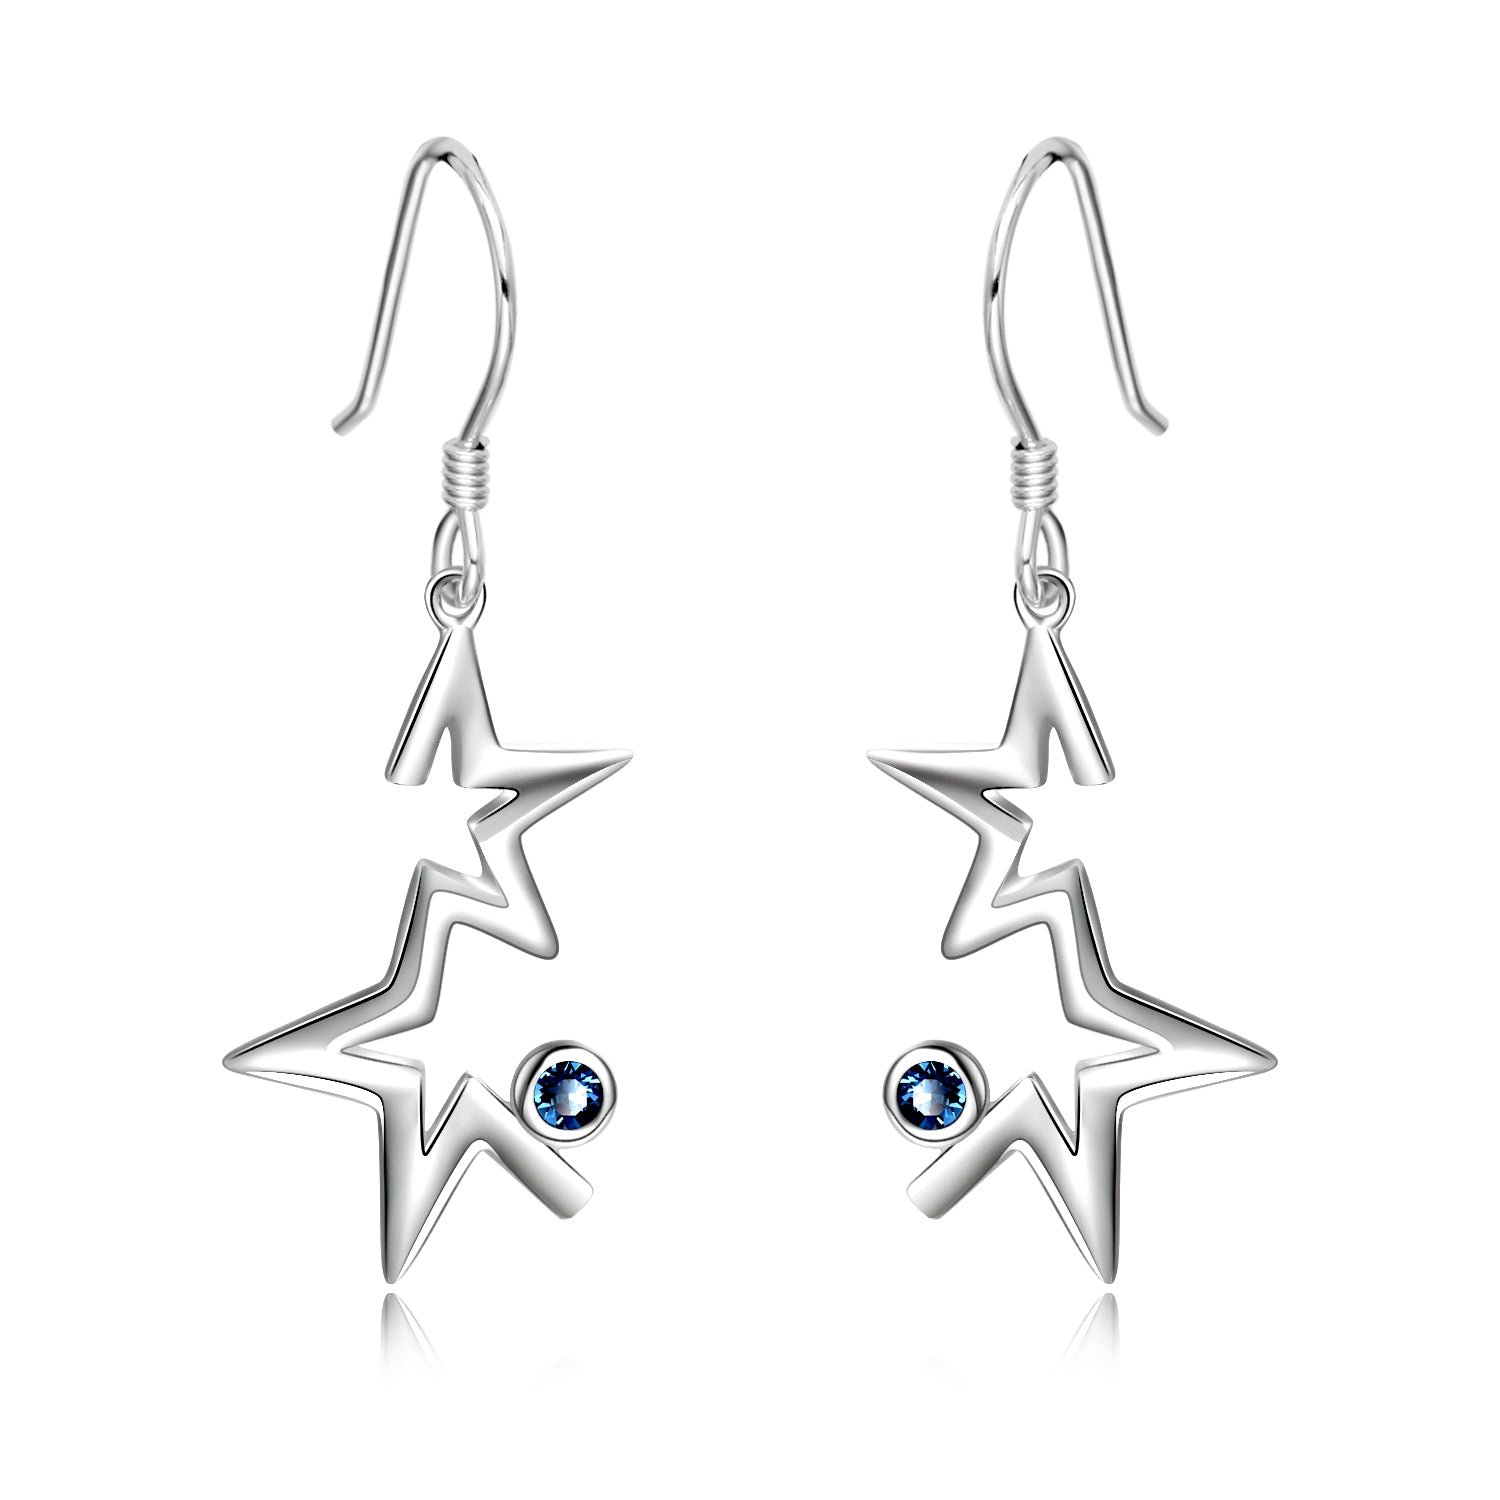 Star Stud Earrings Silver Color With Cute Small Zirconia Designs Earrings